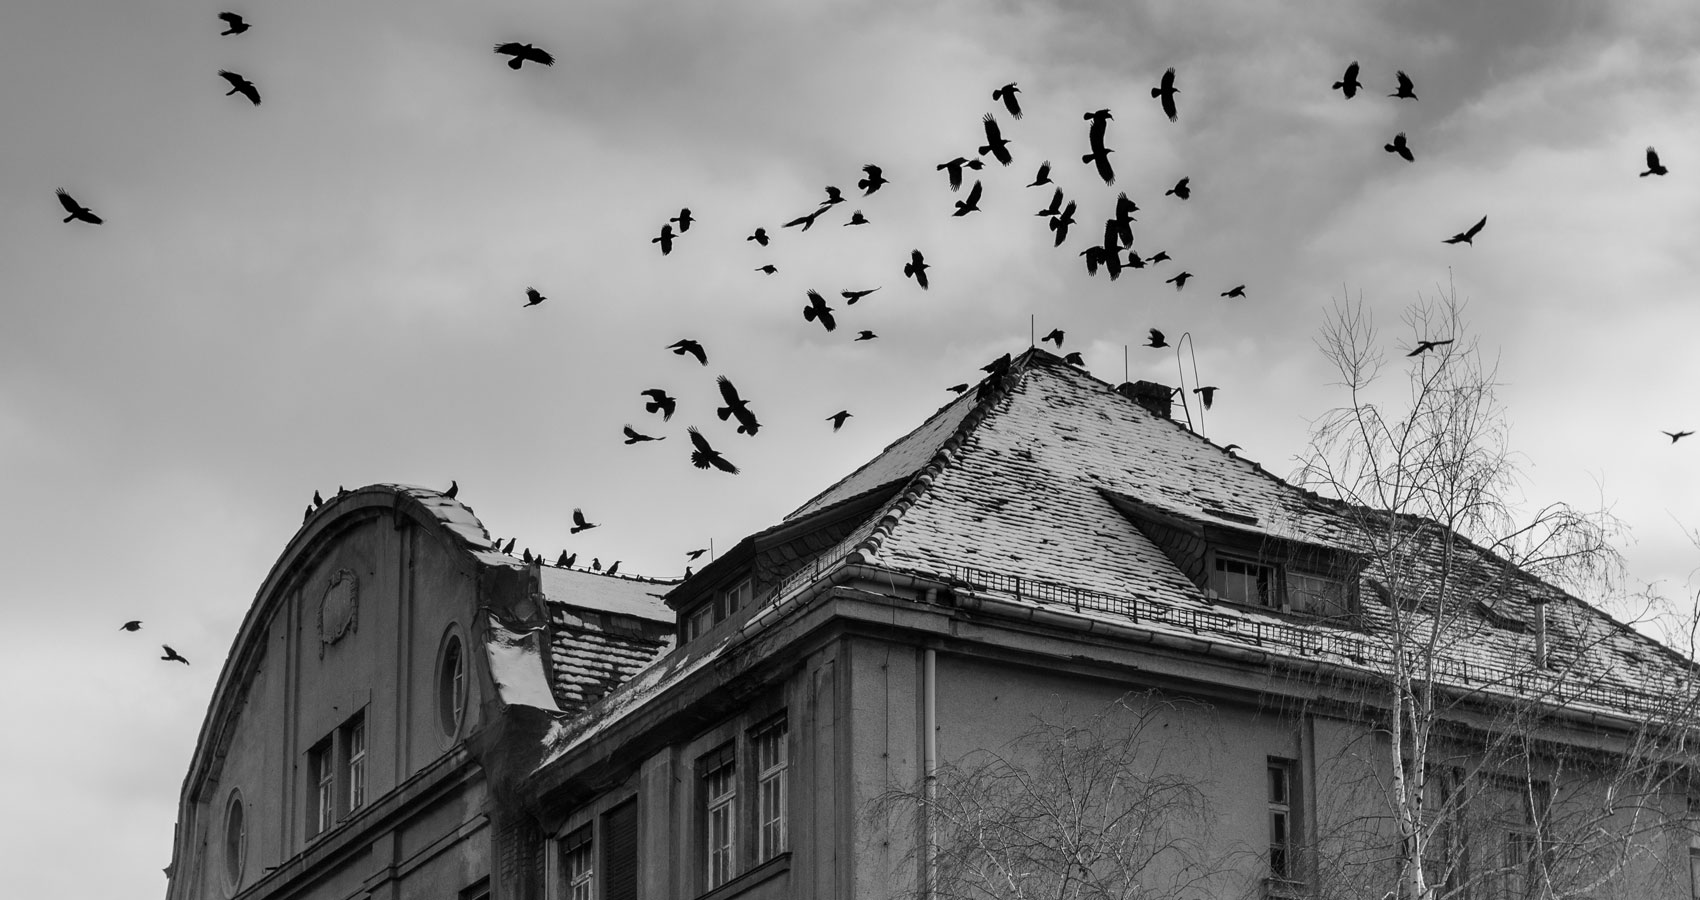 CROWS 5, written by Stanley Wilkin at Spillwords.com